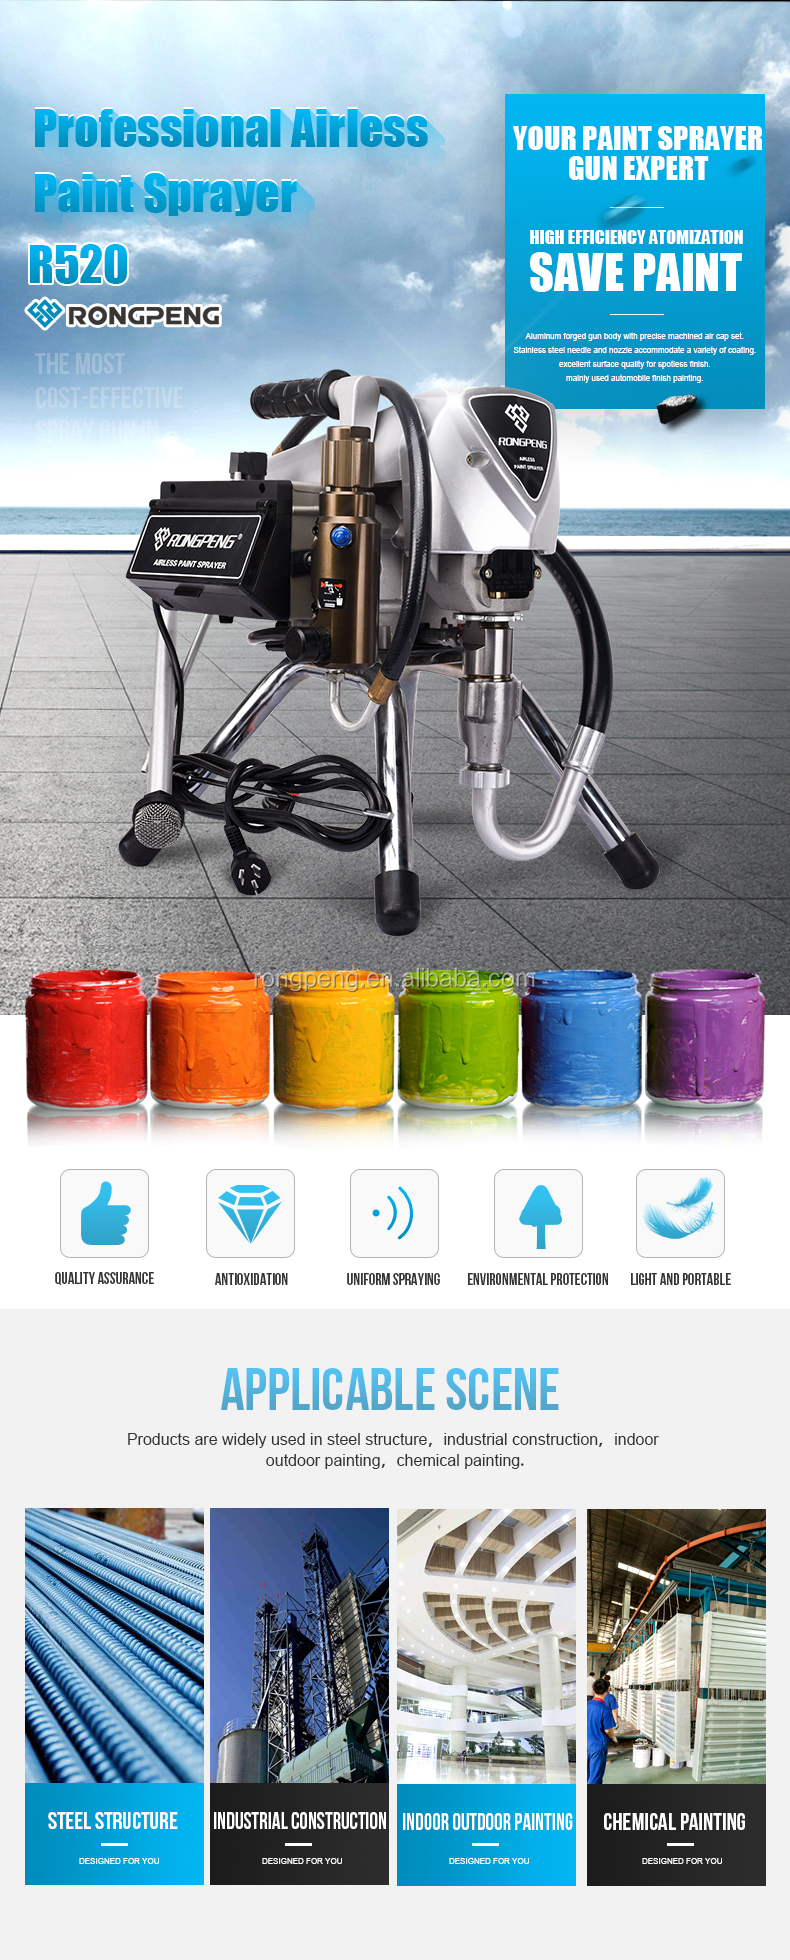 RONGPENG CE Certified Steel Low Power Electric High Pressure Pump Sprayer  220V 5/8HP Airless Paint Sprayer With 818 Airless gun, View High Pressure